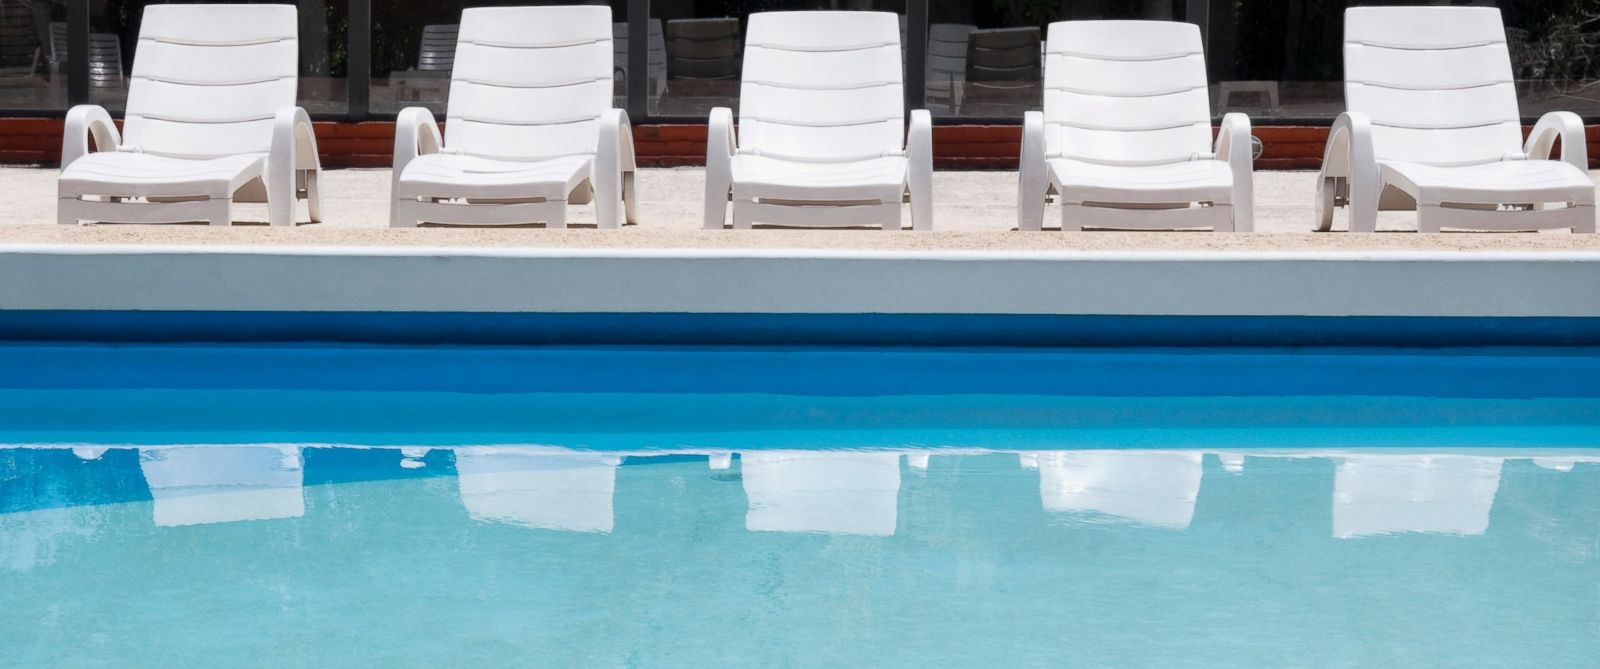 2 In Critical Condition After Electrically Shocked In Swimming Pools This Weekend Abc News